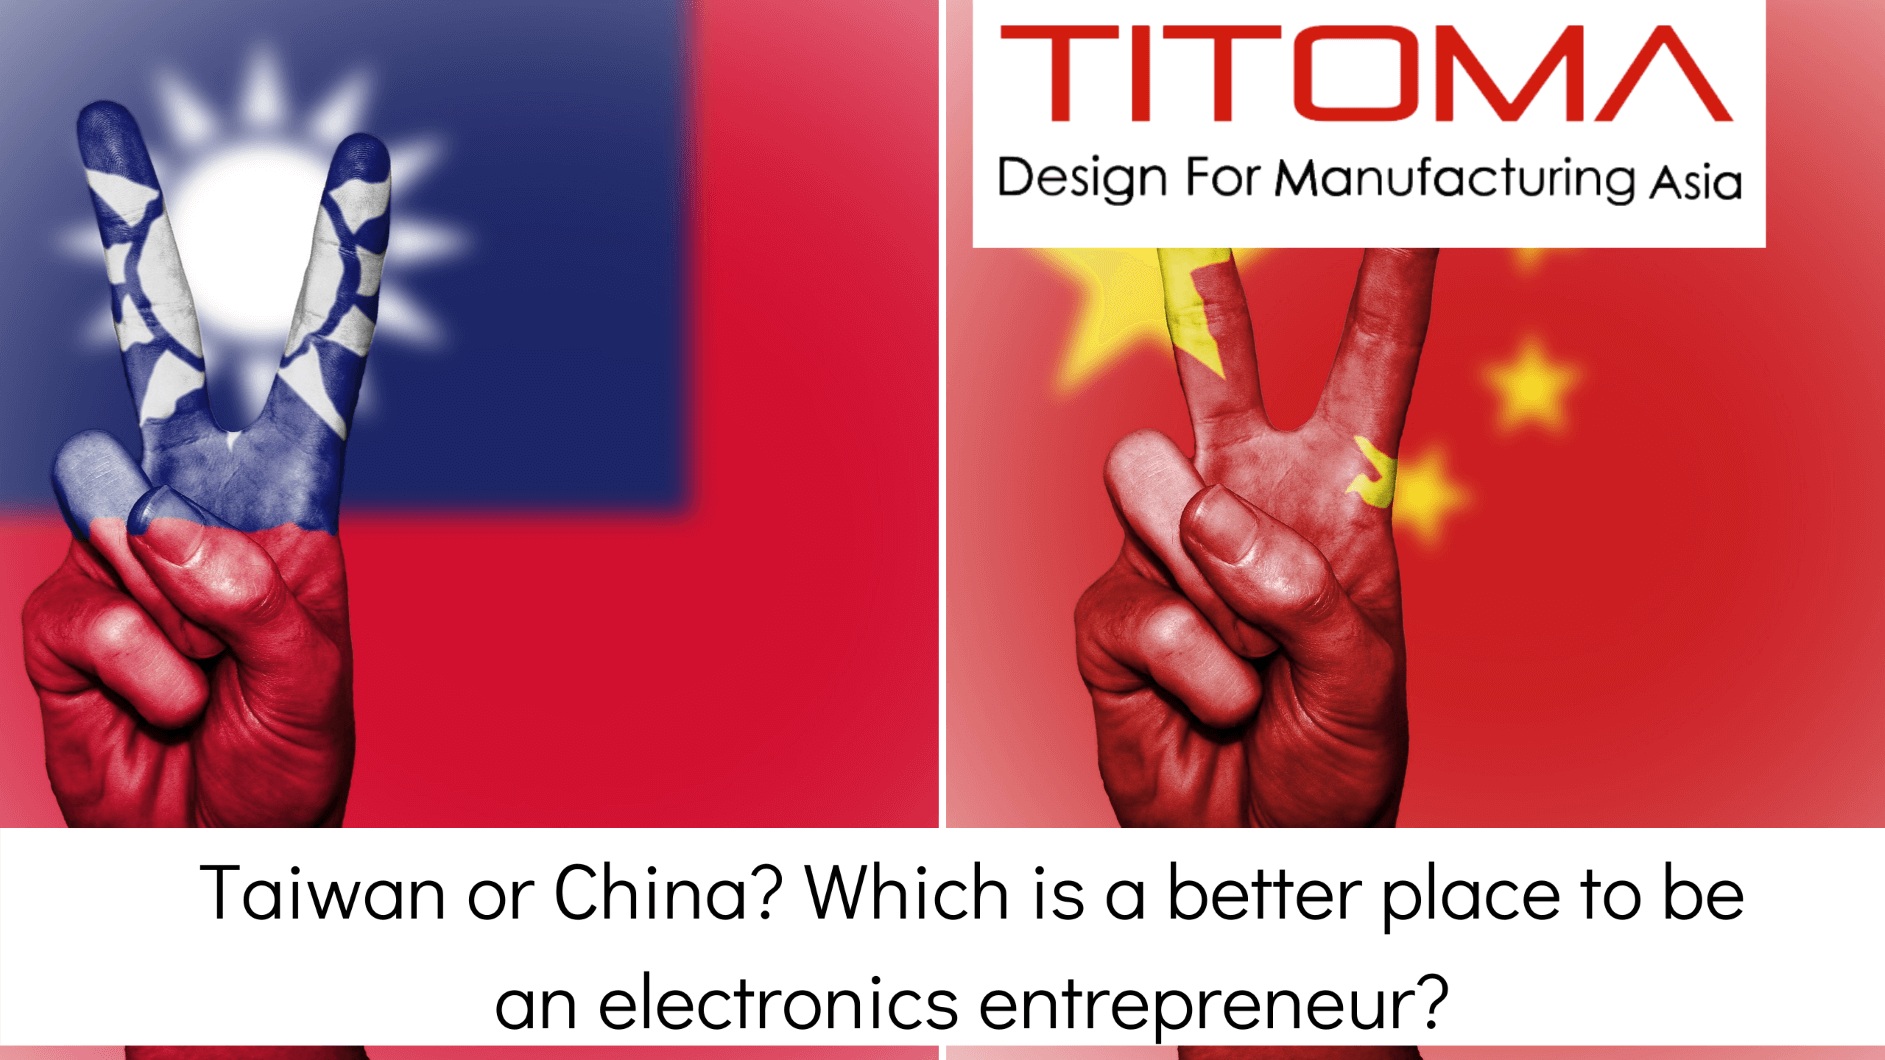 taiwan or china which one is better for manufacturing